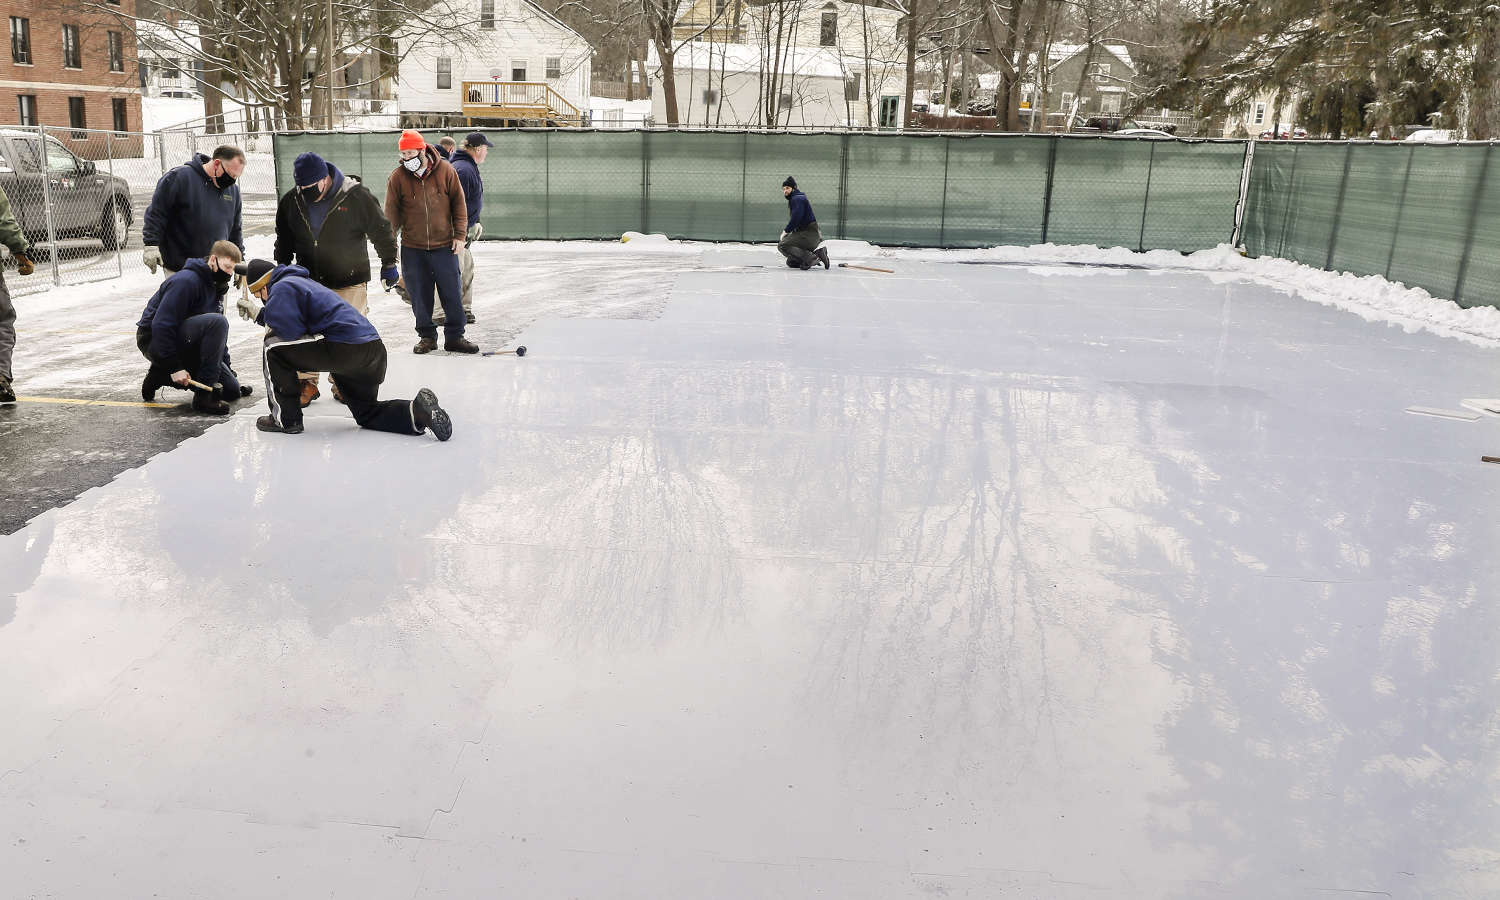 Setting up the Ice Rink for Winter Wonderland